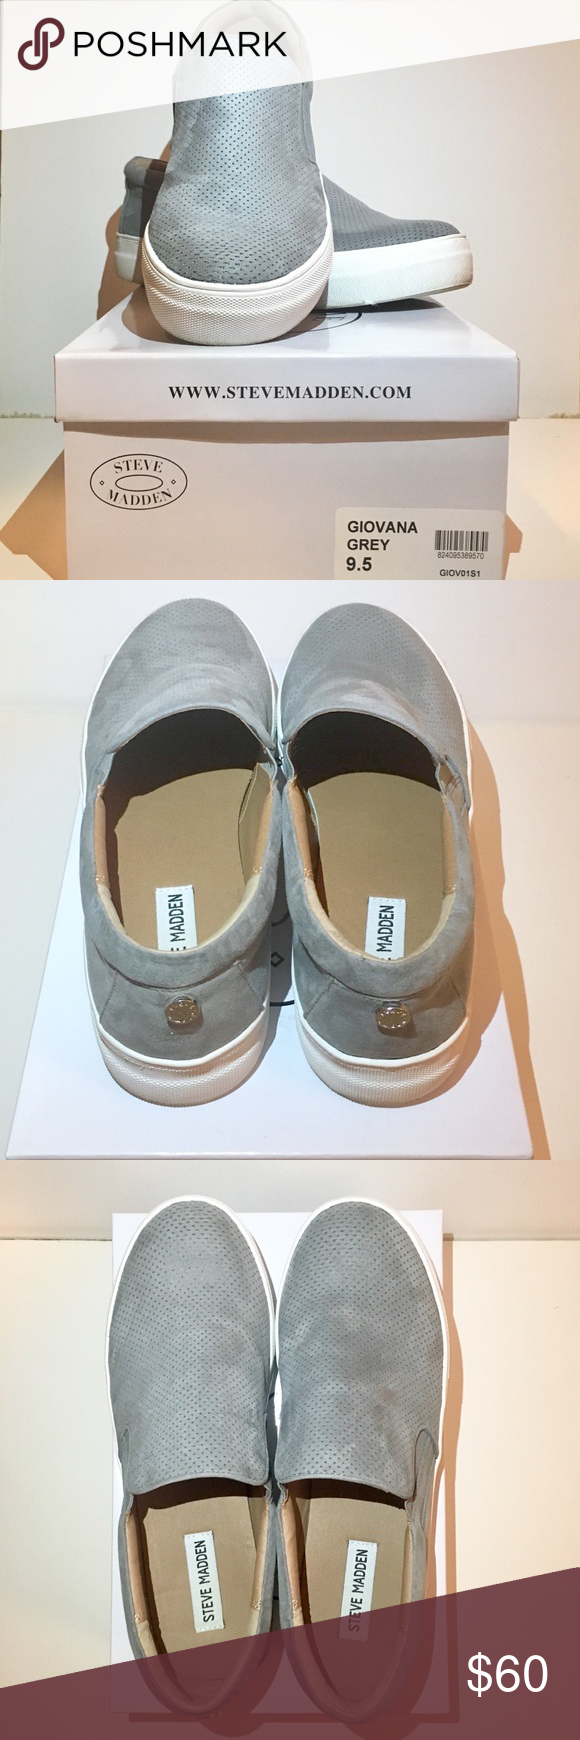 824fb8aa1a6 Steve Madden Giovana Slip-ons Excellent condition